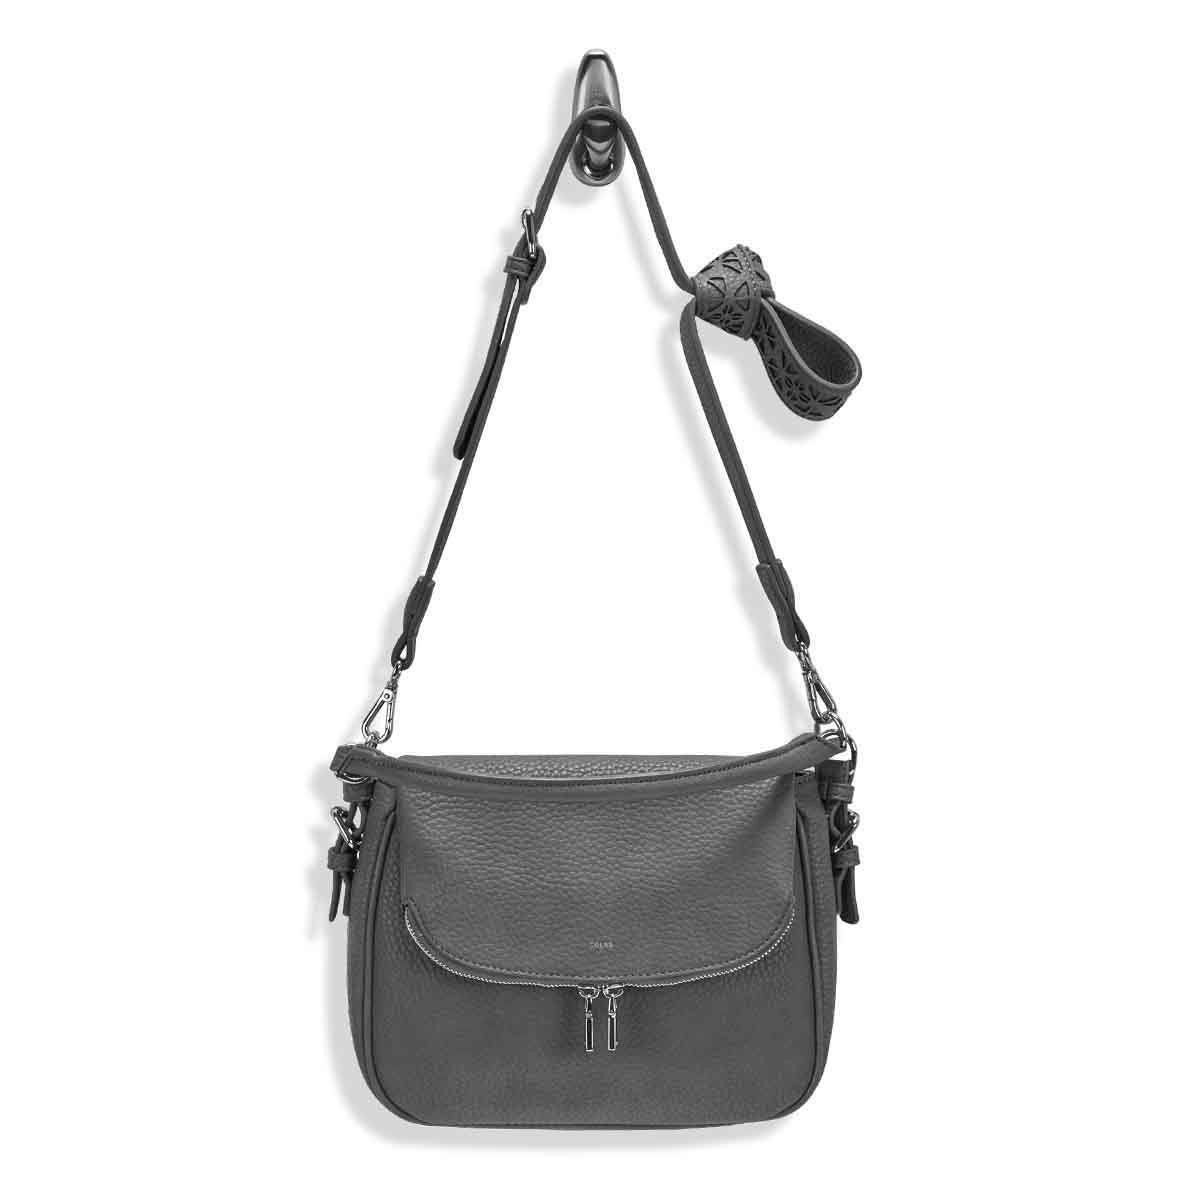 Lds Sasha grey hobo crossbody bag